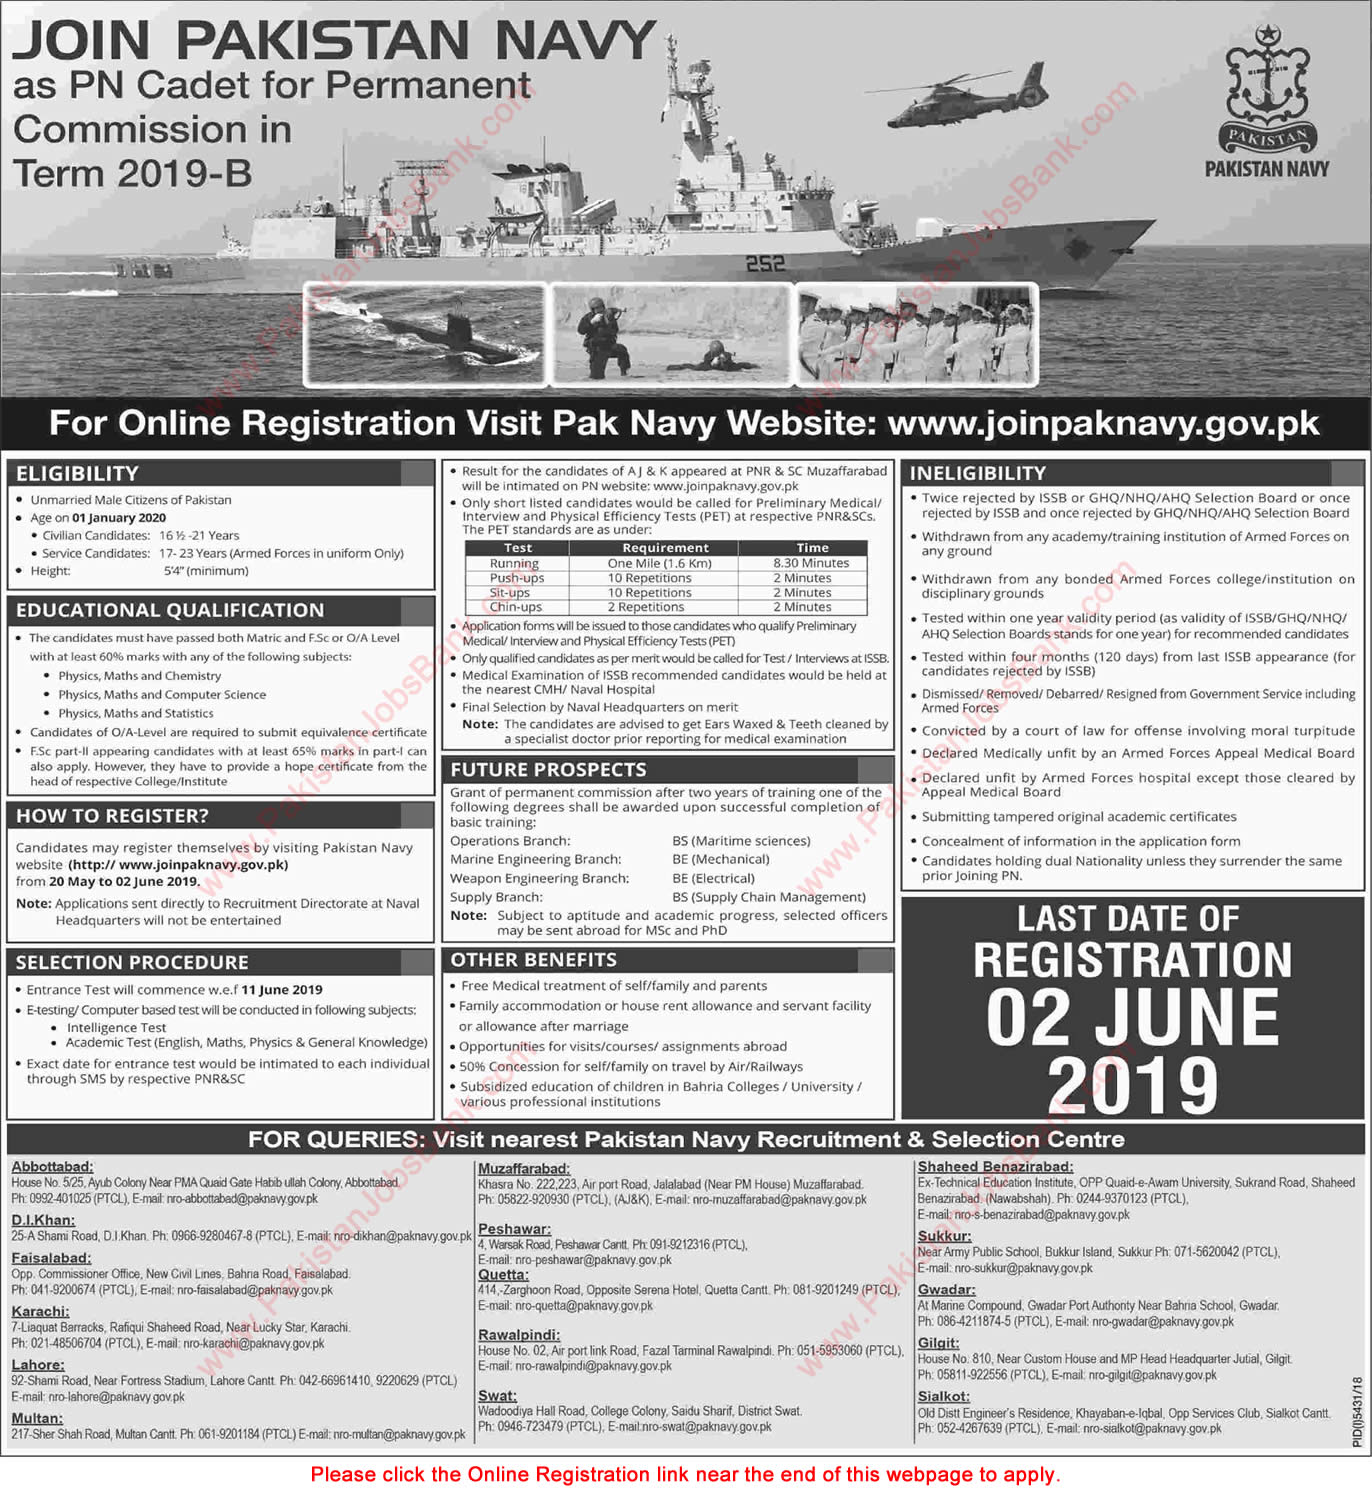 Join Pakistan Navy as PN Cadet 2019 May Online Registration